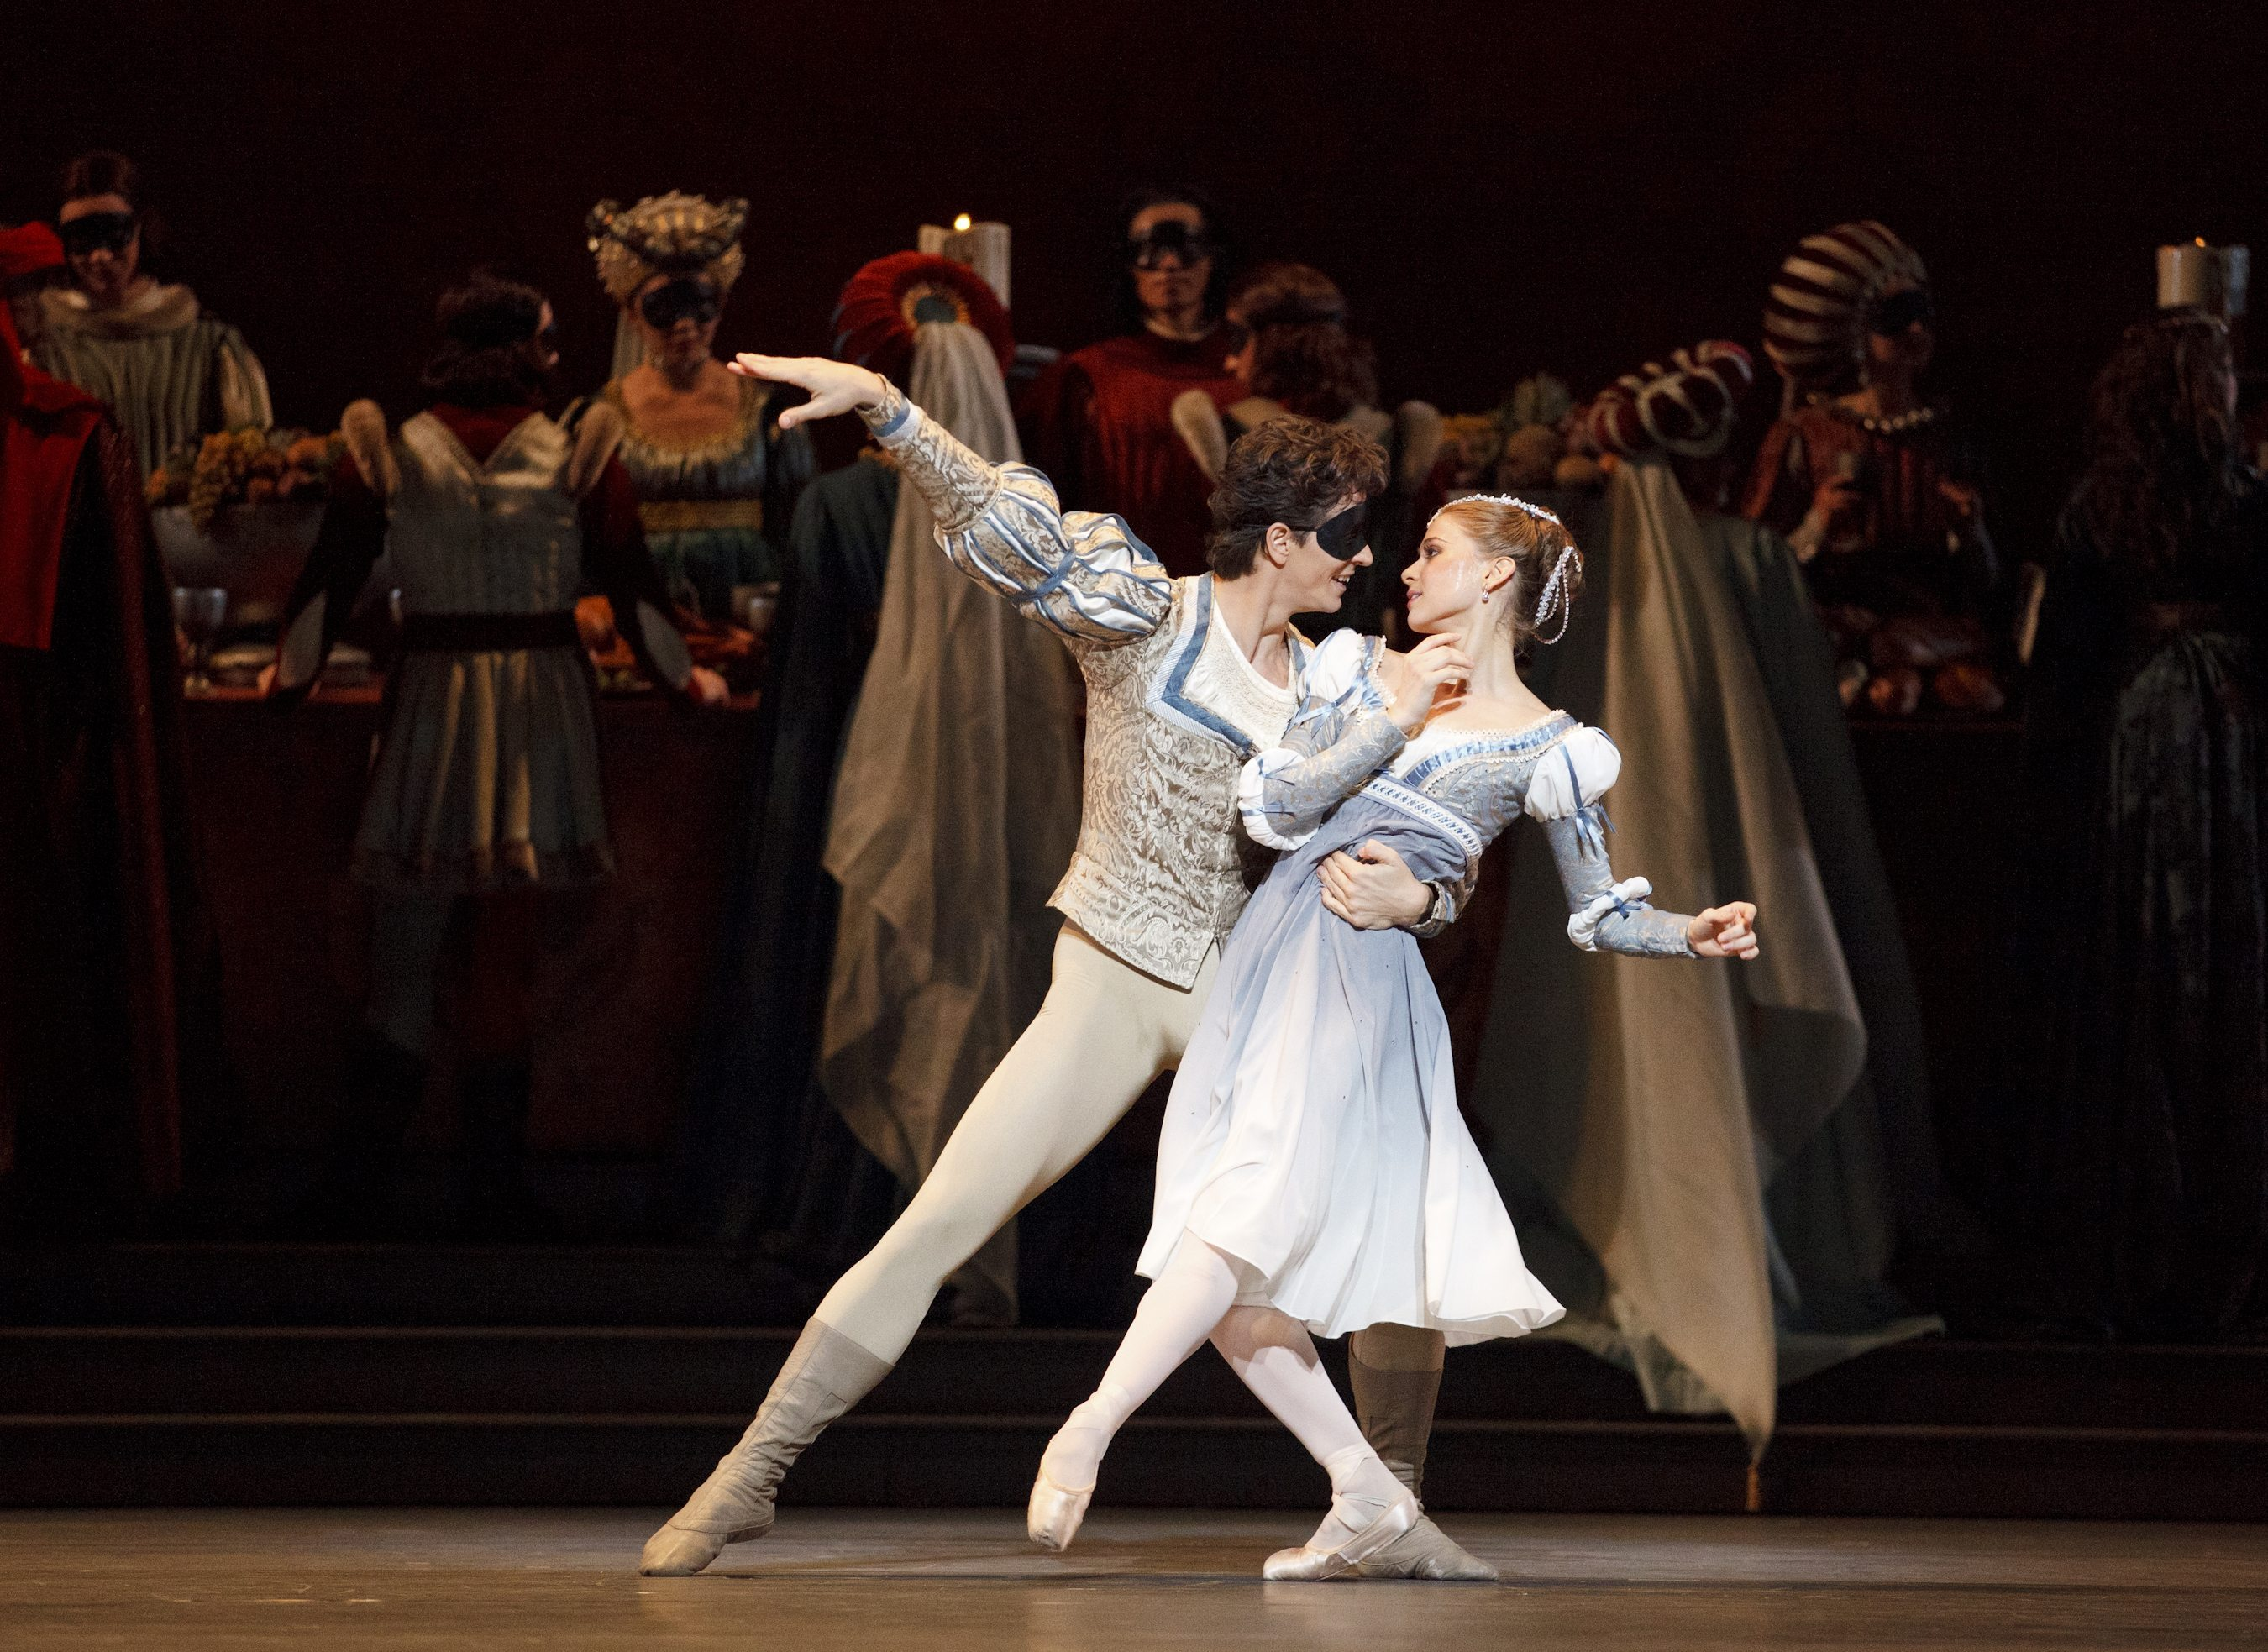 Guillaume Côté and Elena Lobsanova star in Romeo and Juliet. Photo by Bruce Zinger.